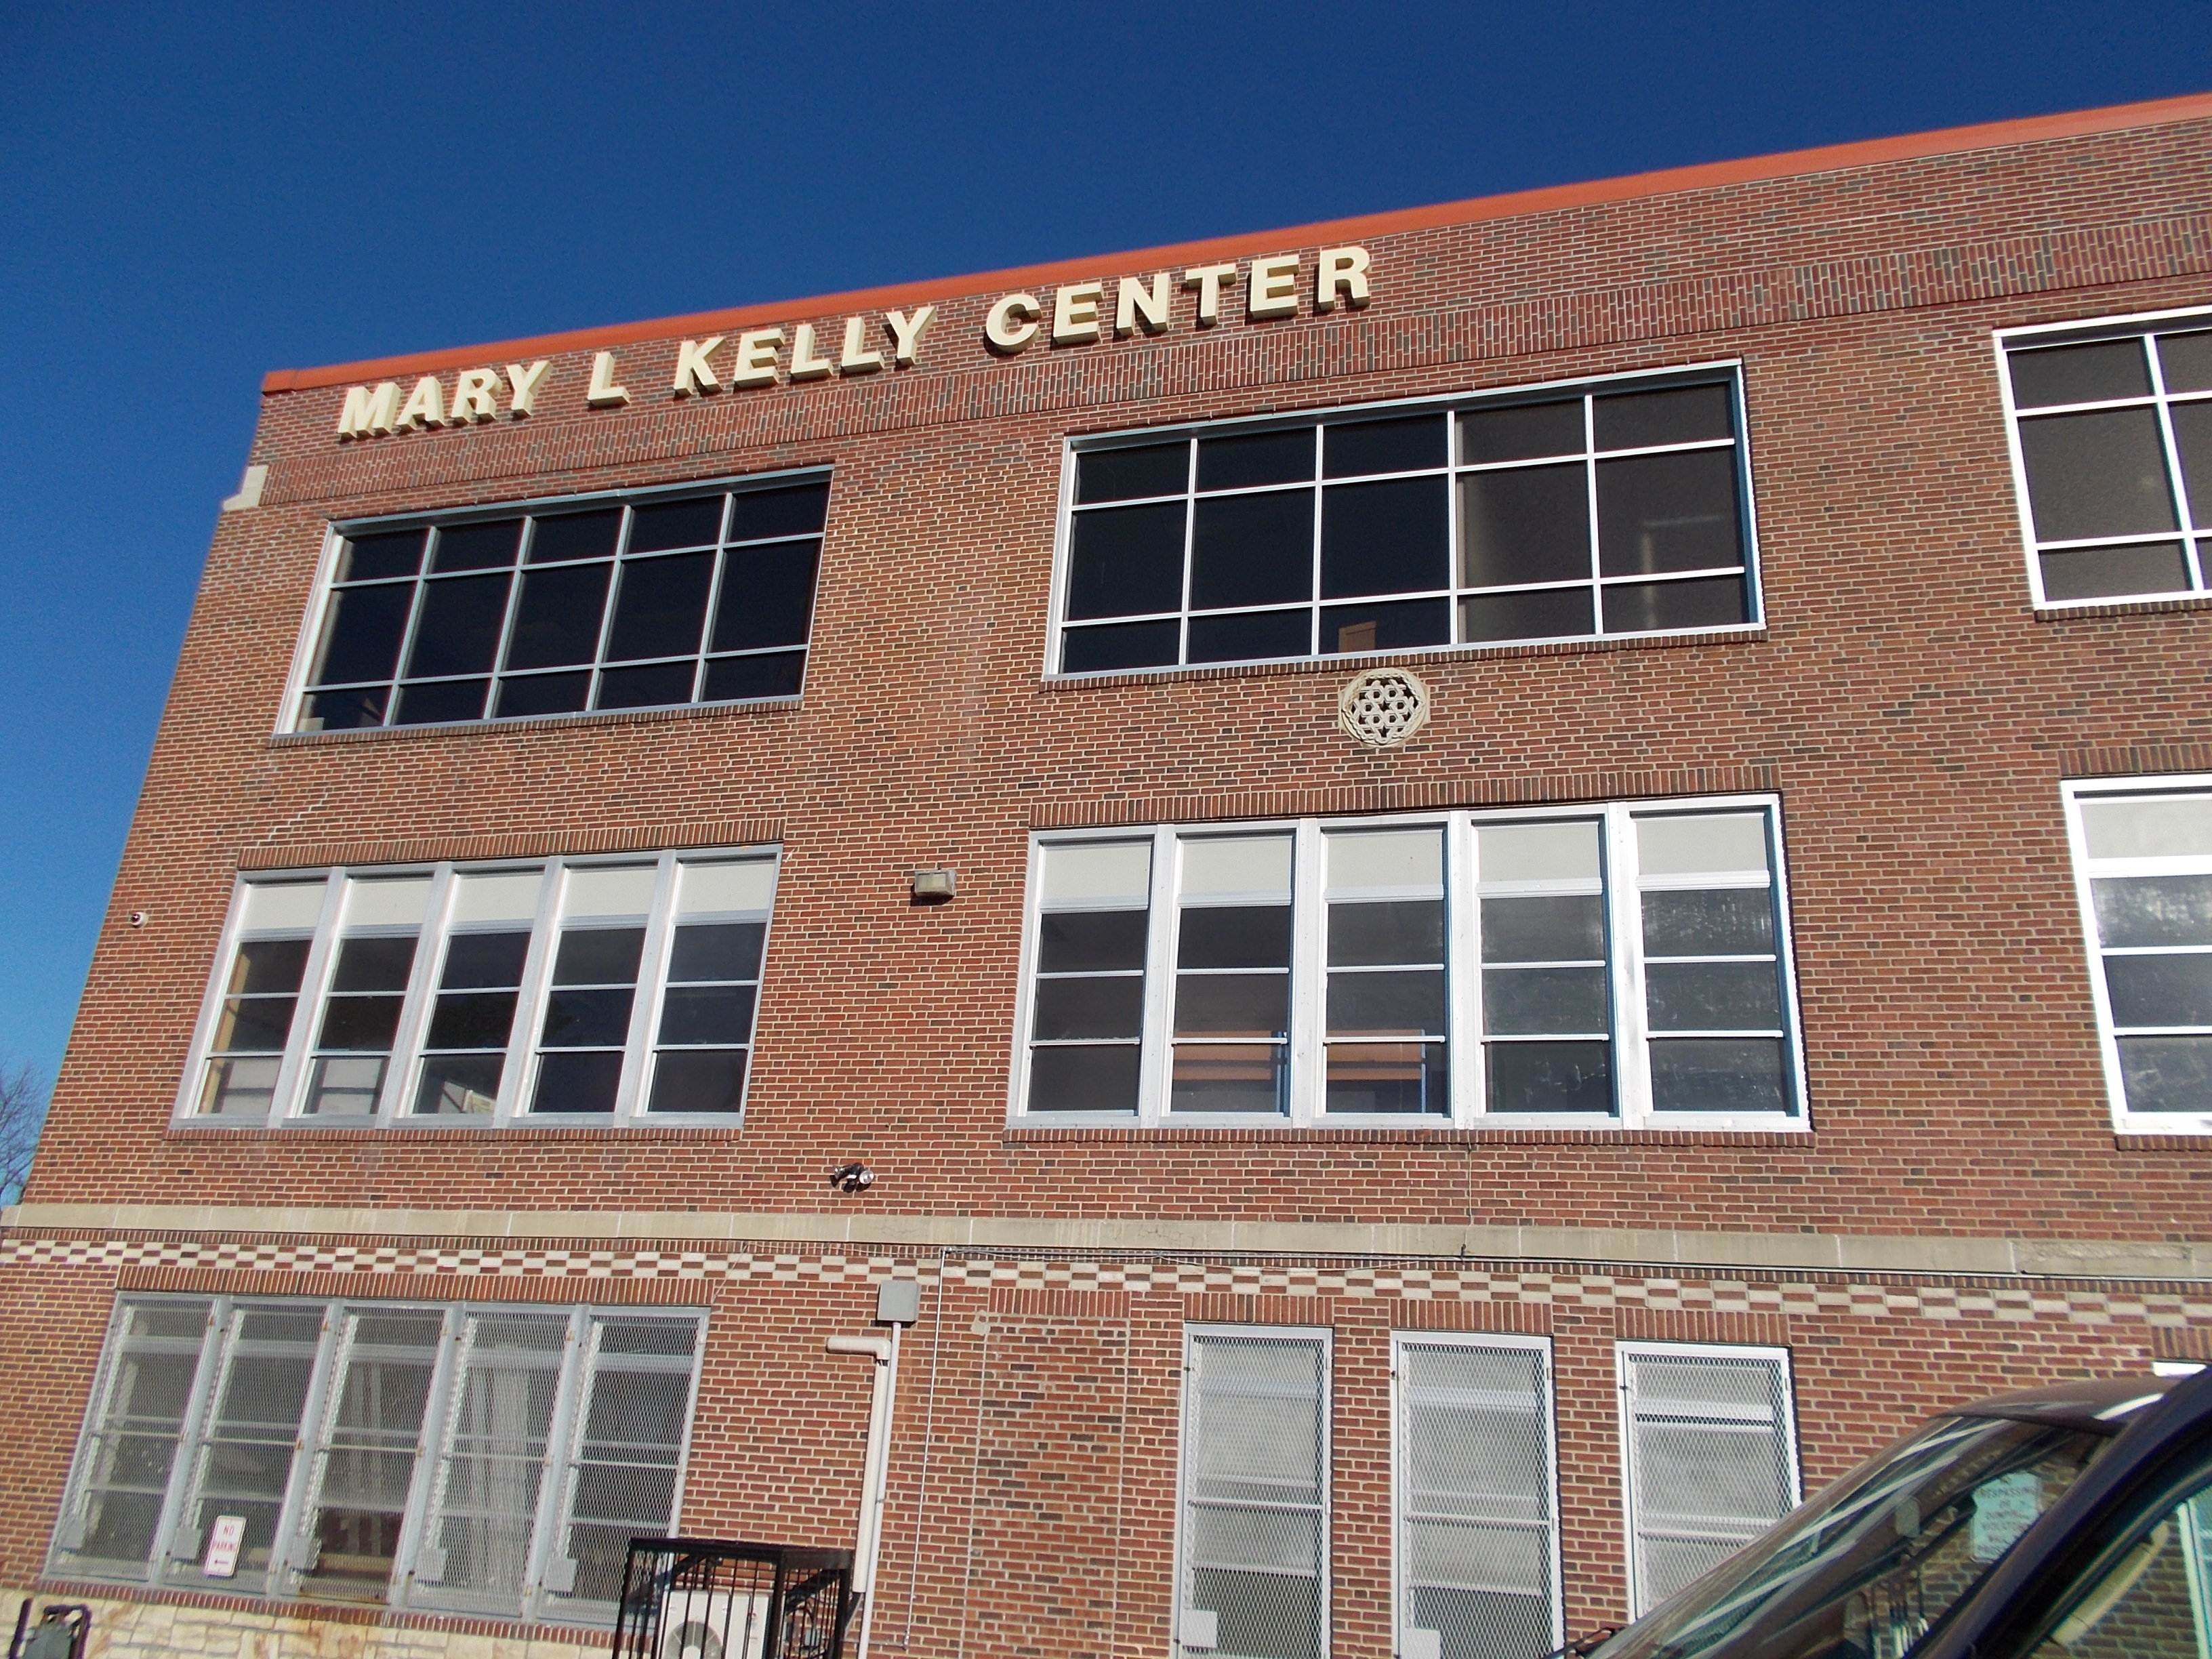 Mary Kelly Center